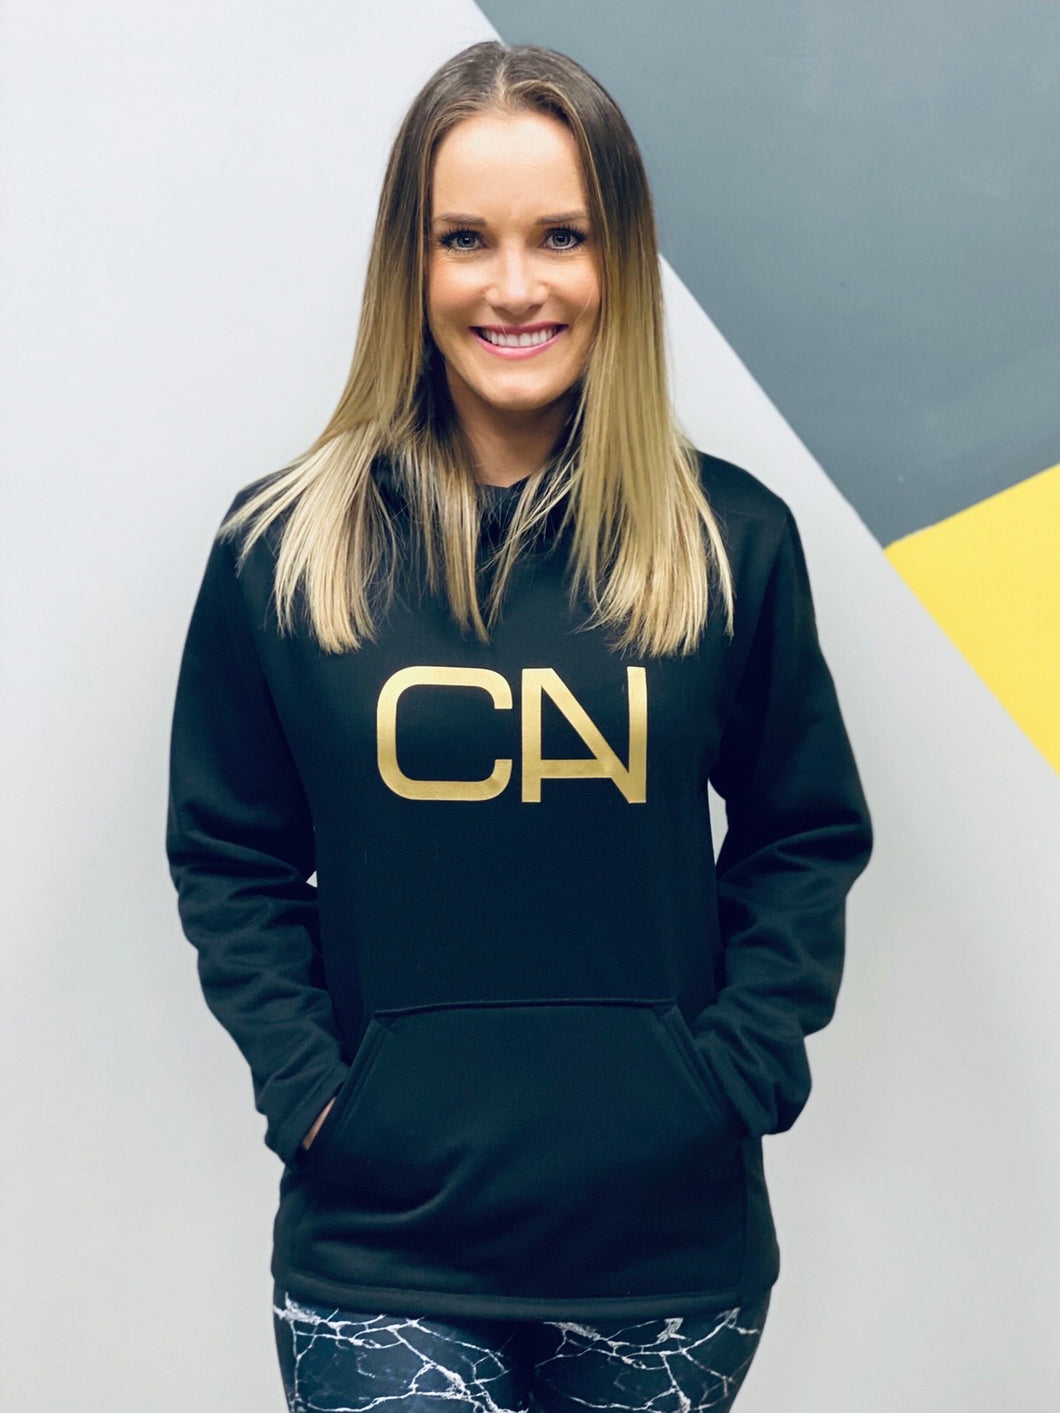 CAN Hoodie - Black/Gold CAN - Style 351